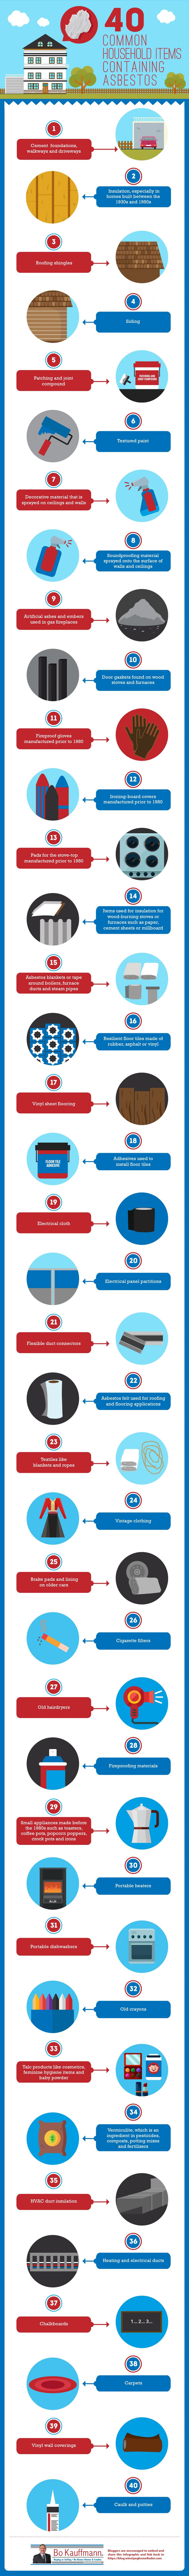 40 Common Household Items Potentially Containing Asbestos - Infographic asbestos